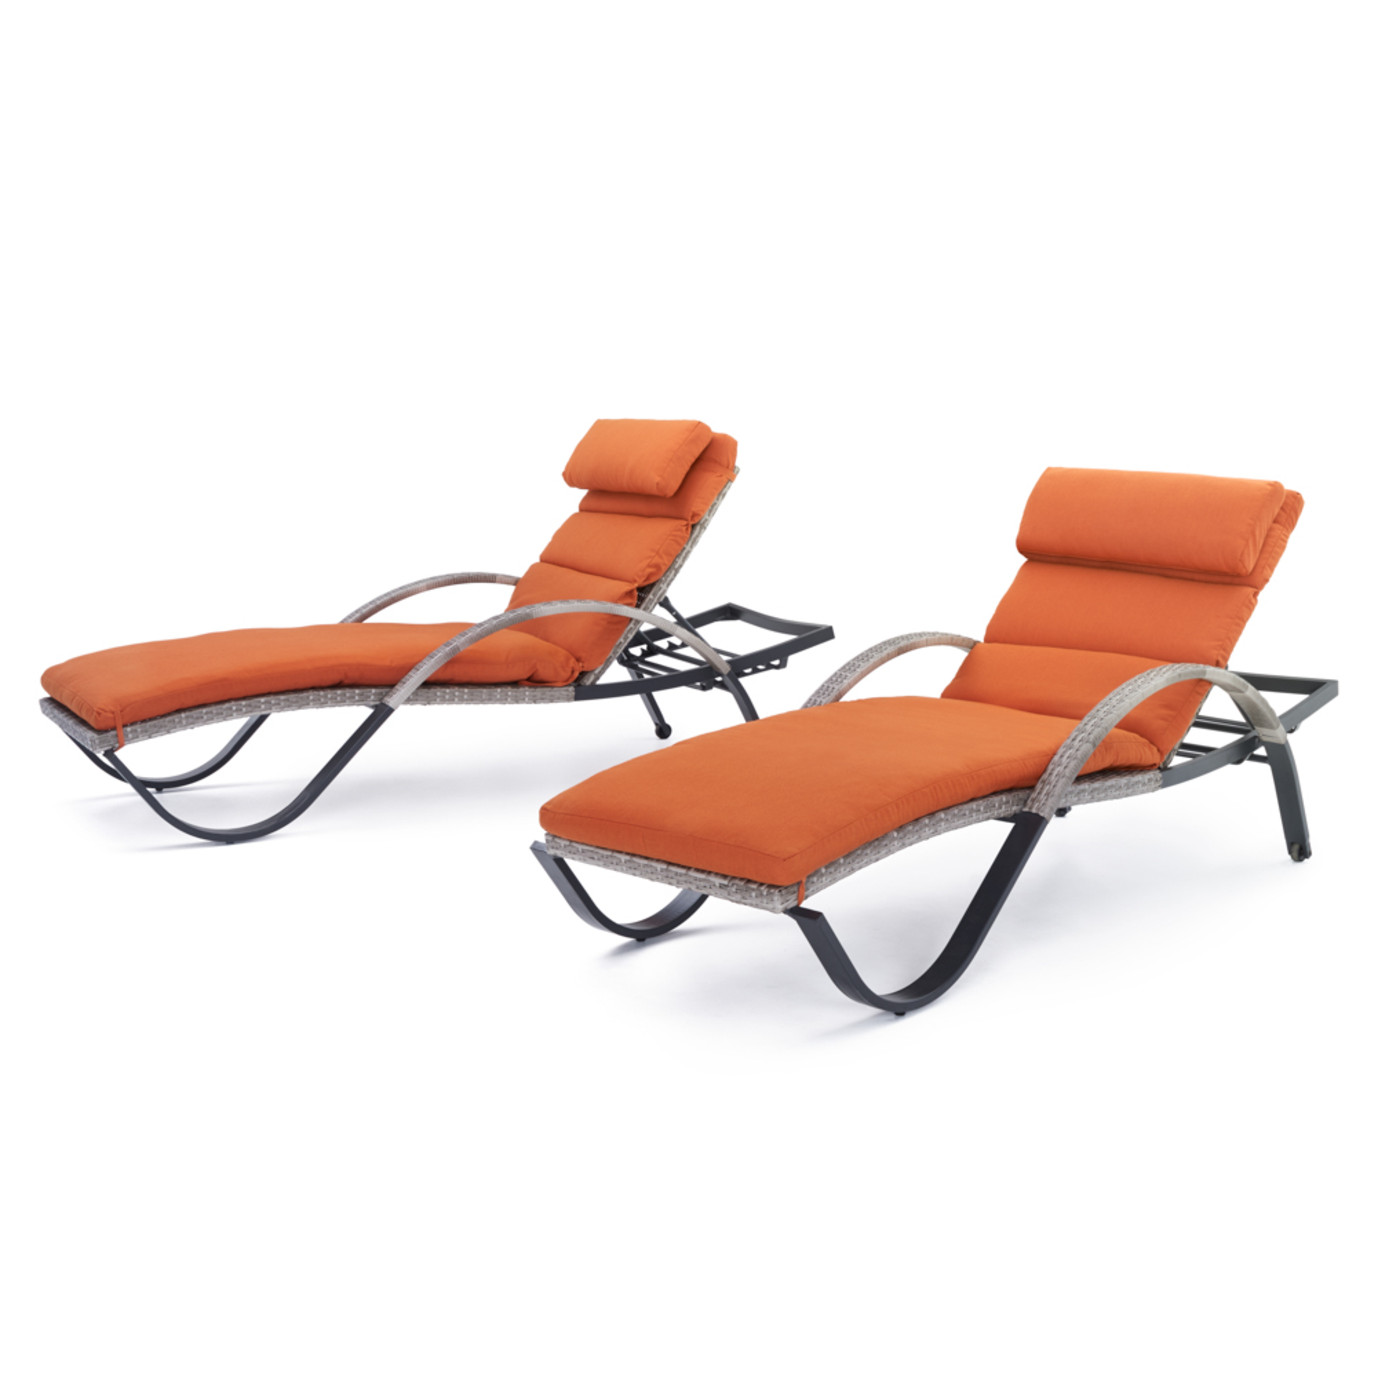 Cannes chaise lounges with cushion and pillow tikka for Chaise longue orange